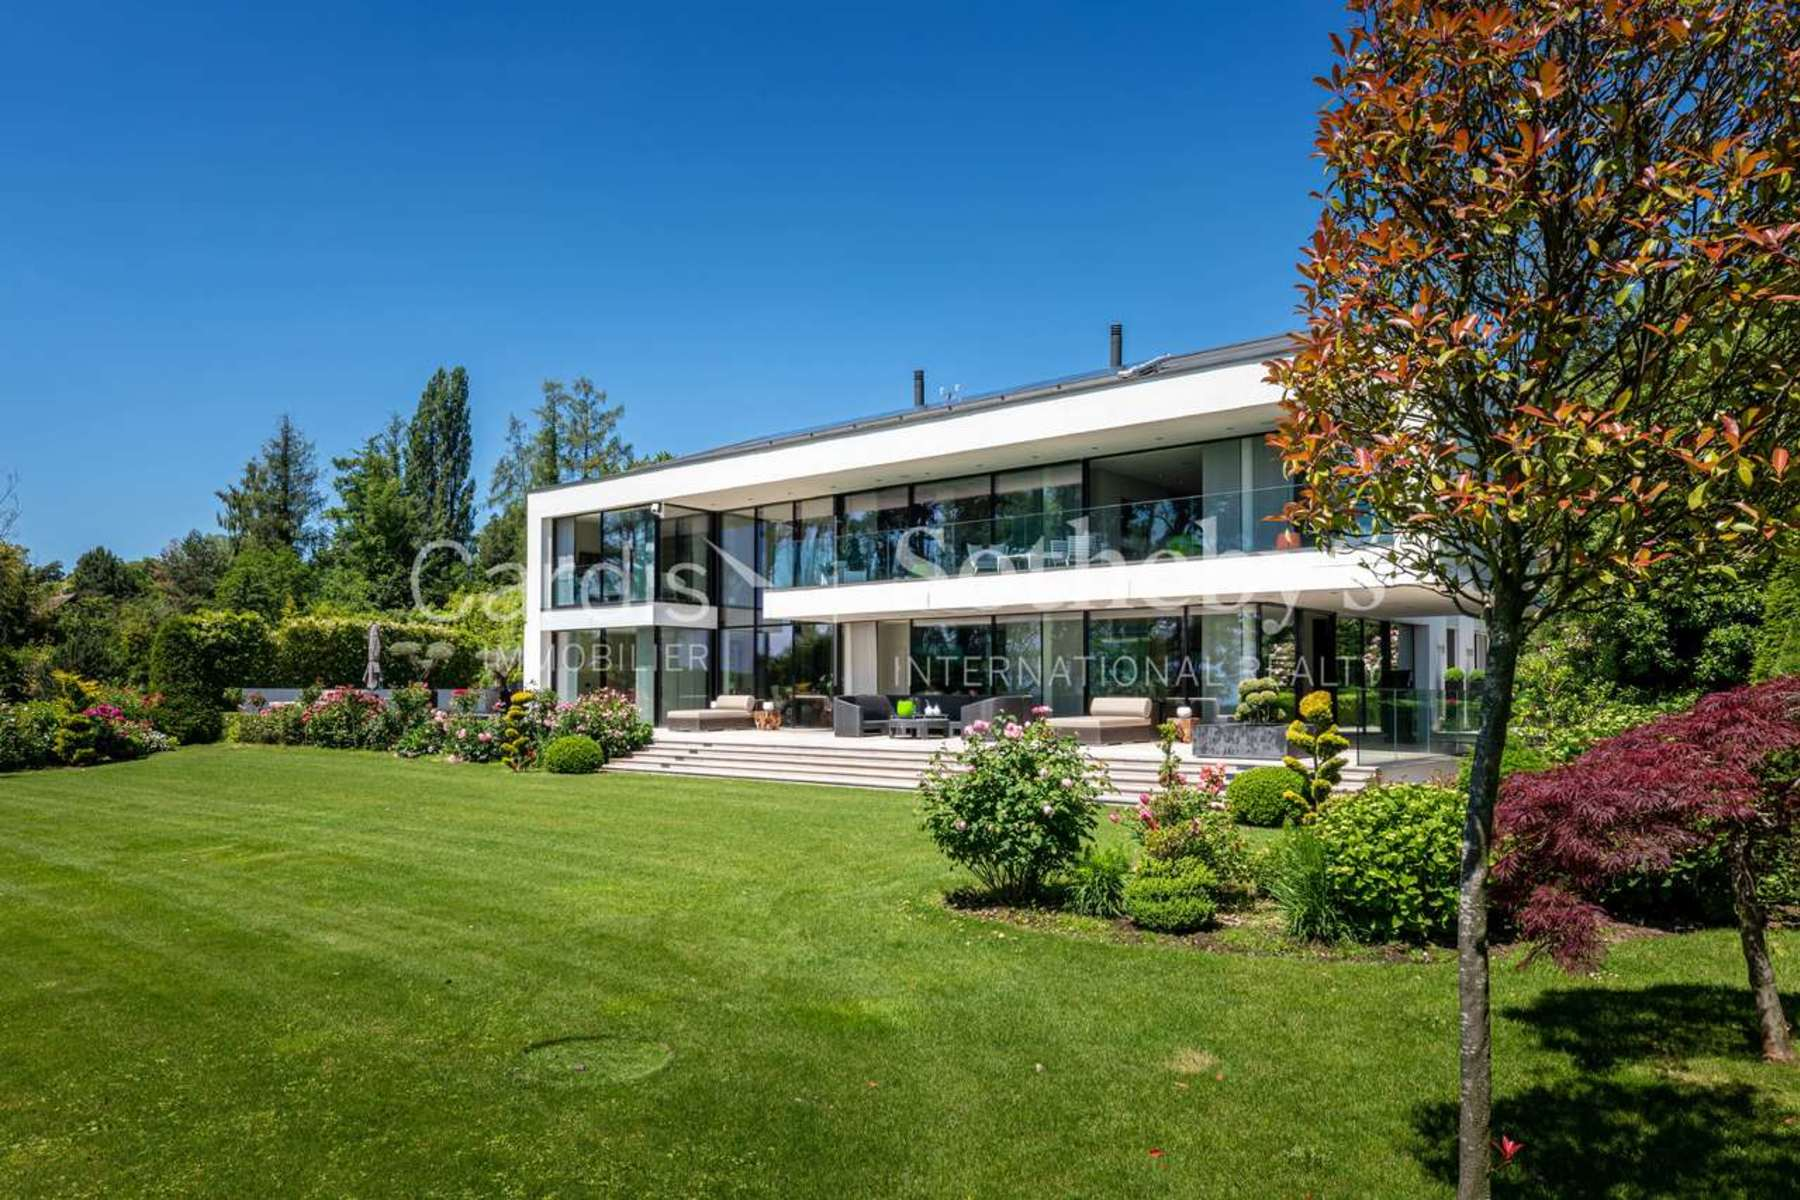 Single Family Homes for Sale at W A T E R F R O N T Morges Morges, Vaud 1110 Switzerland